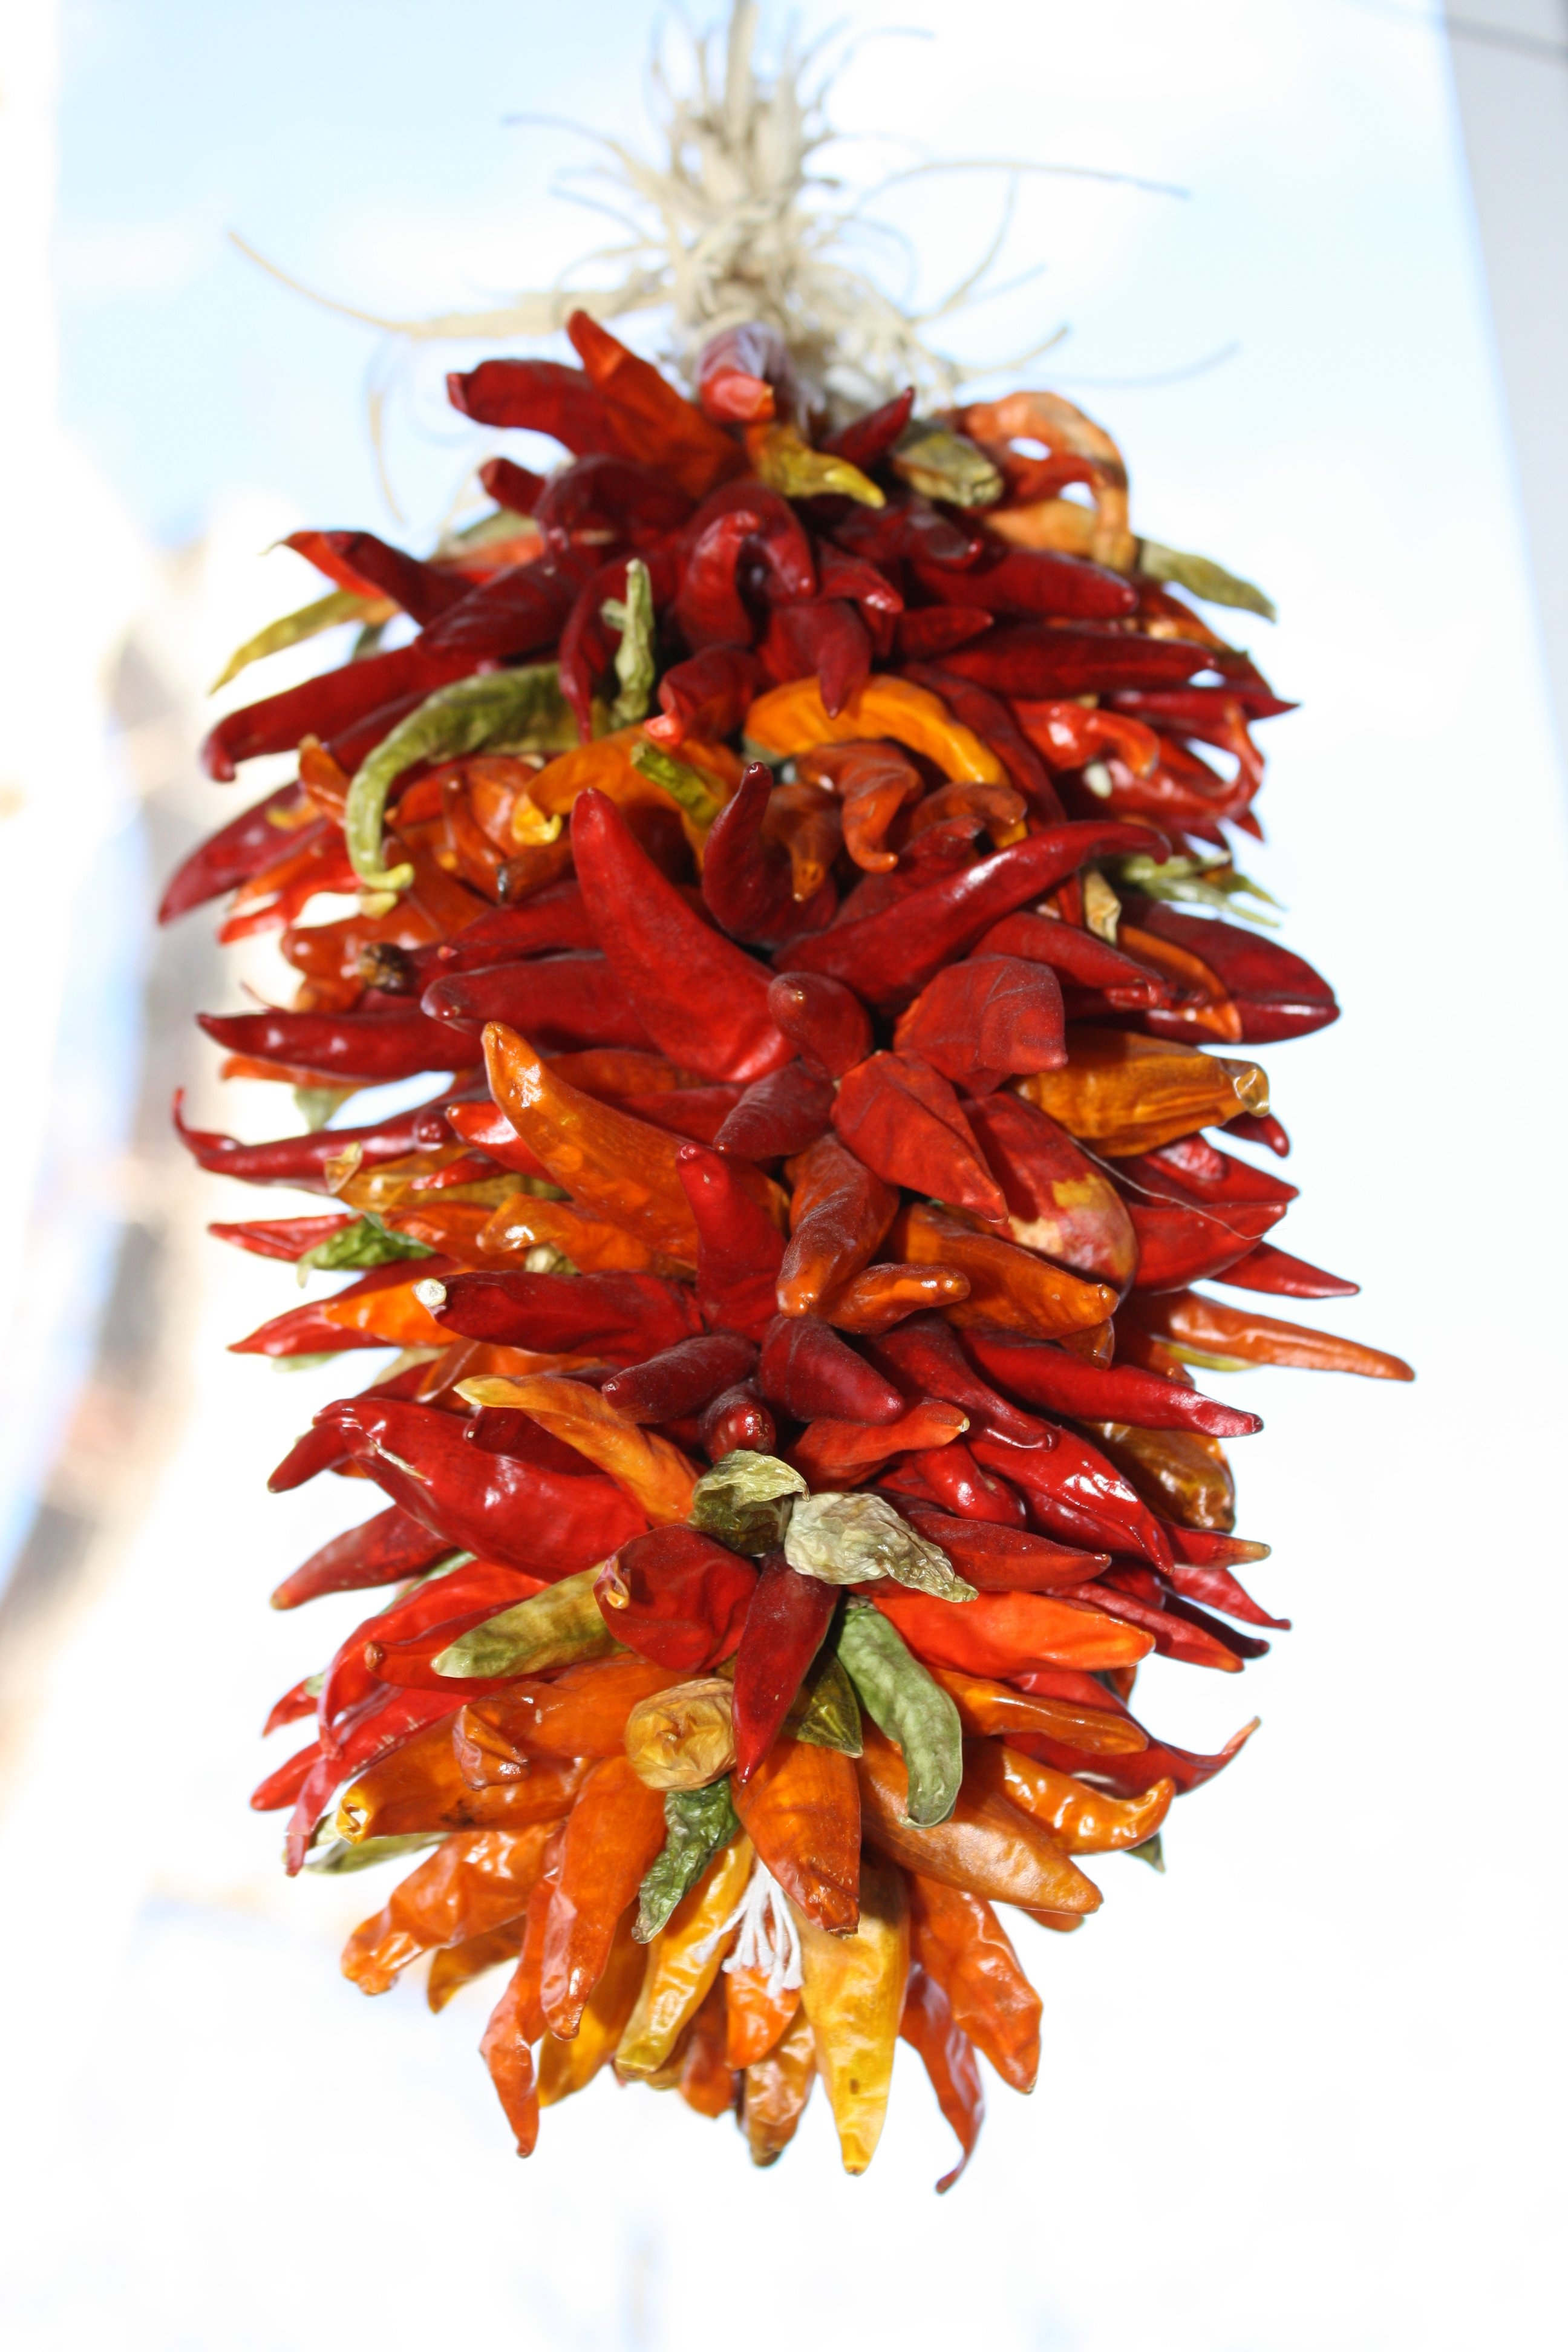 Decorative Red Chili Pepper Braid Kitchen Decor2592 X 3888